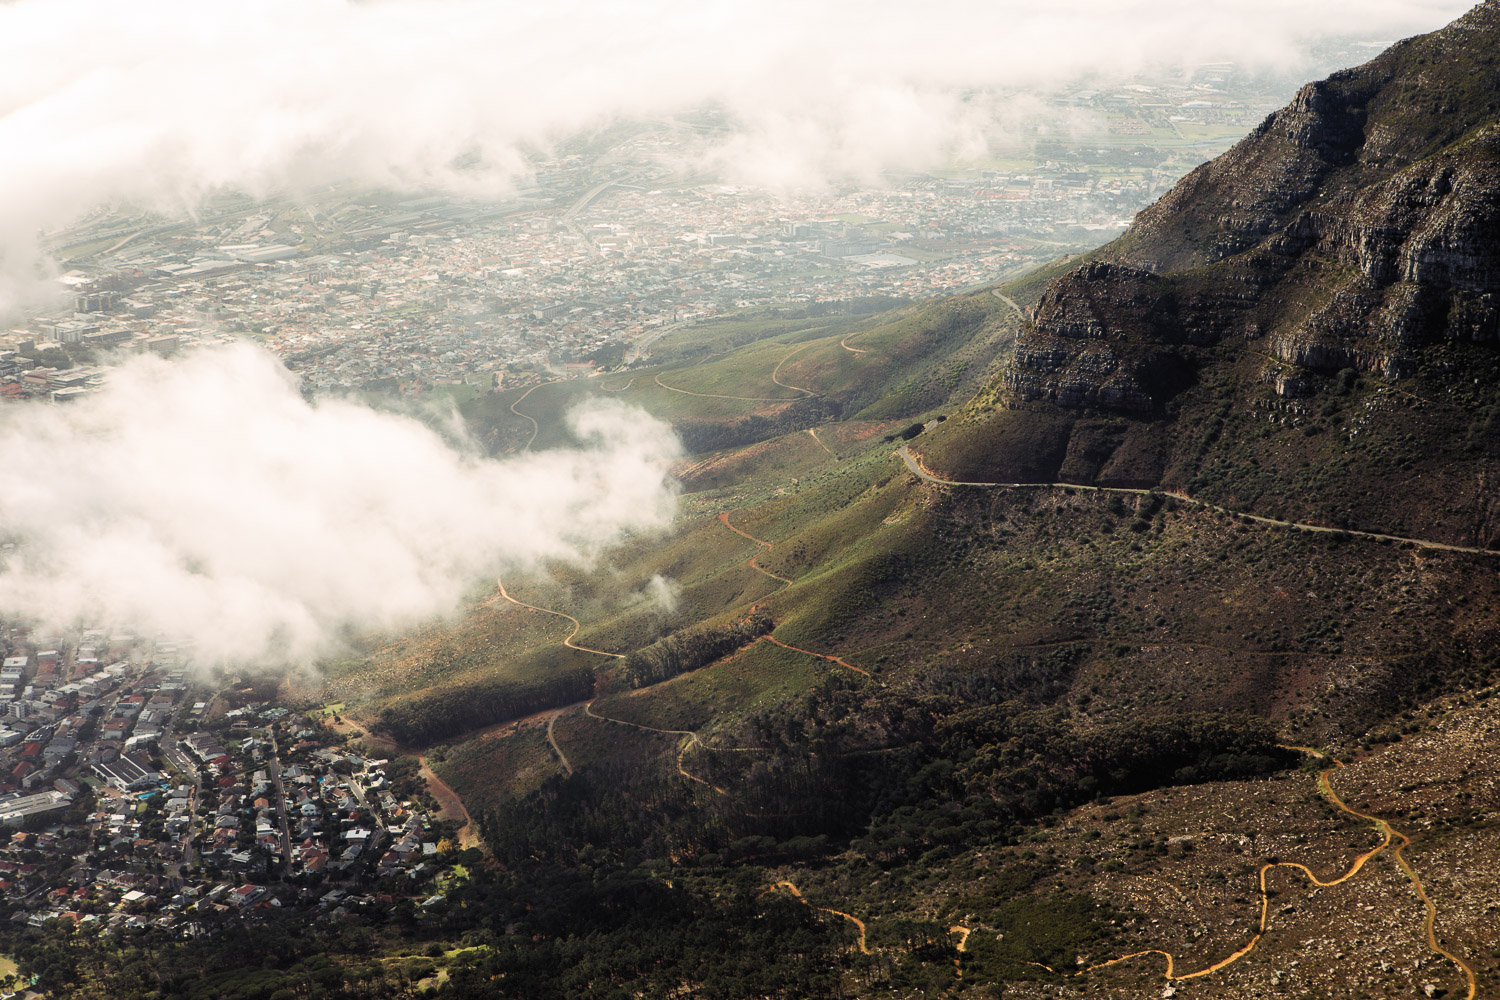 south-africa-travel-photography-1-35.jpg